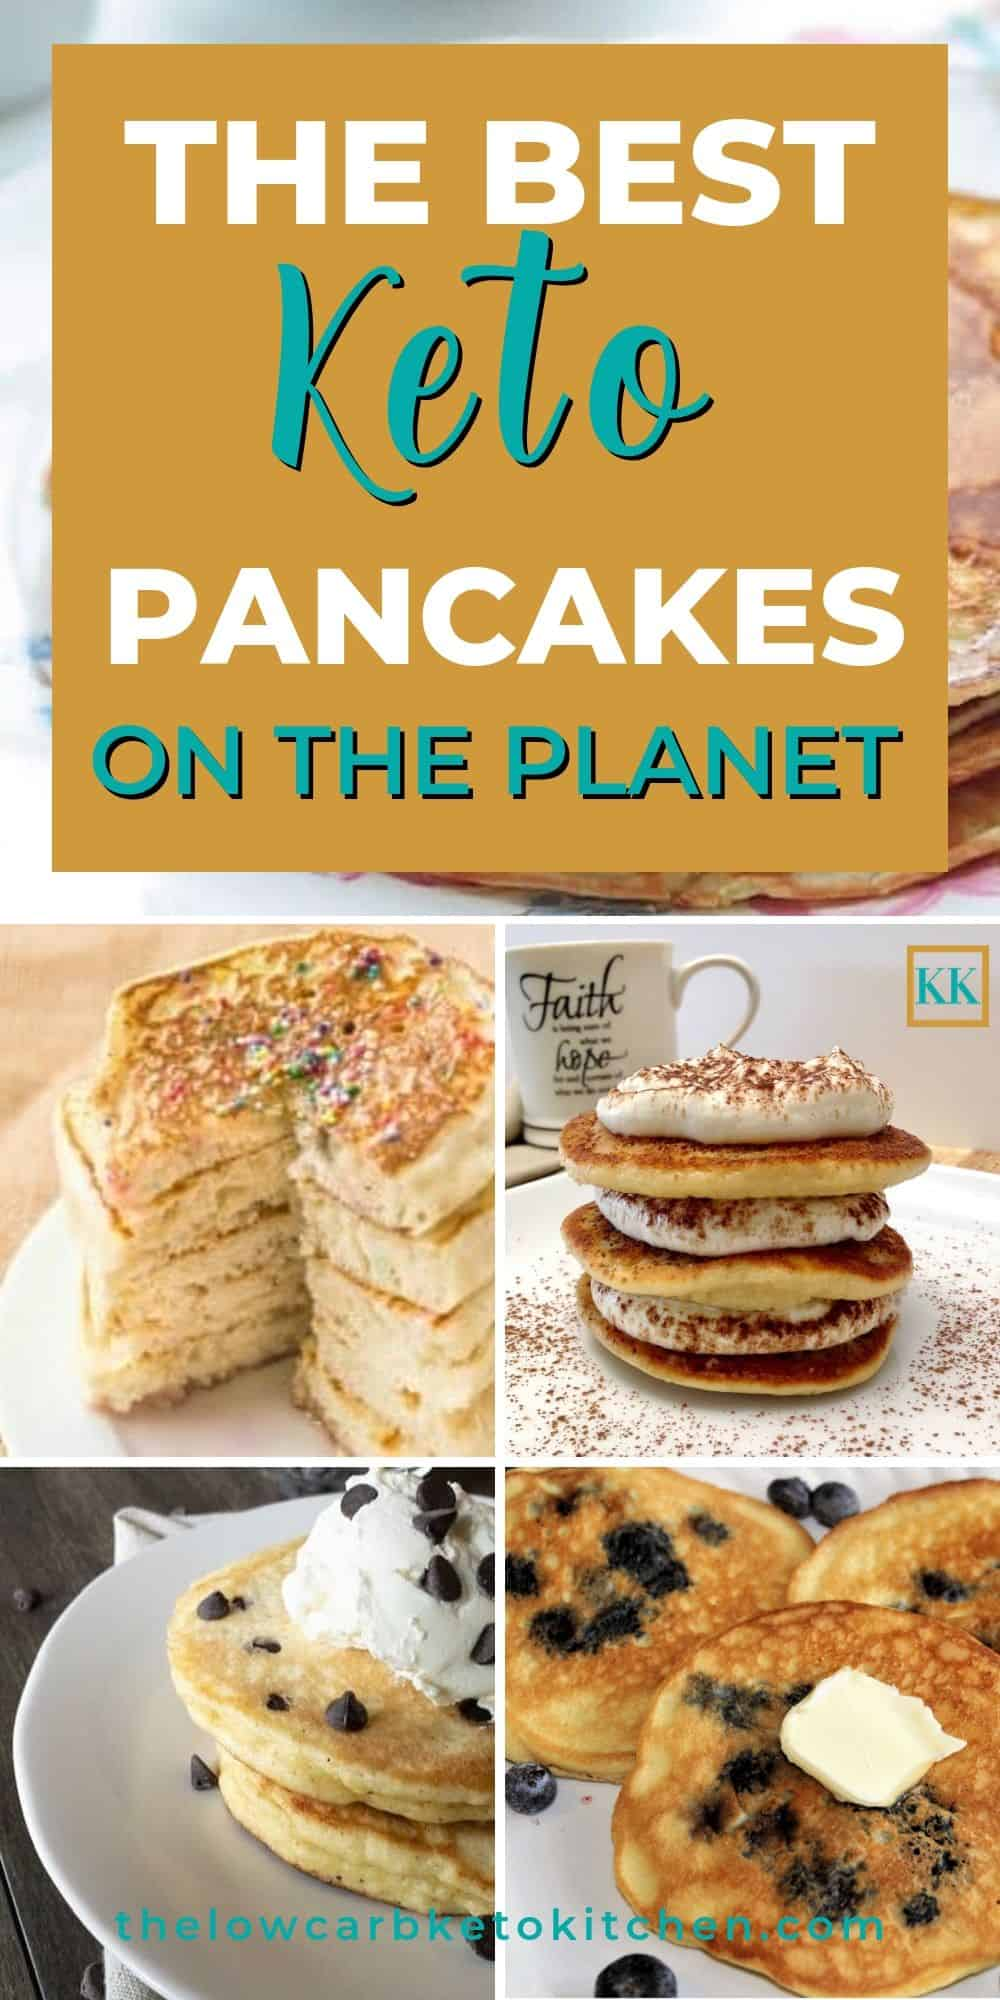 Keto Pancake Photo Collage